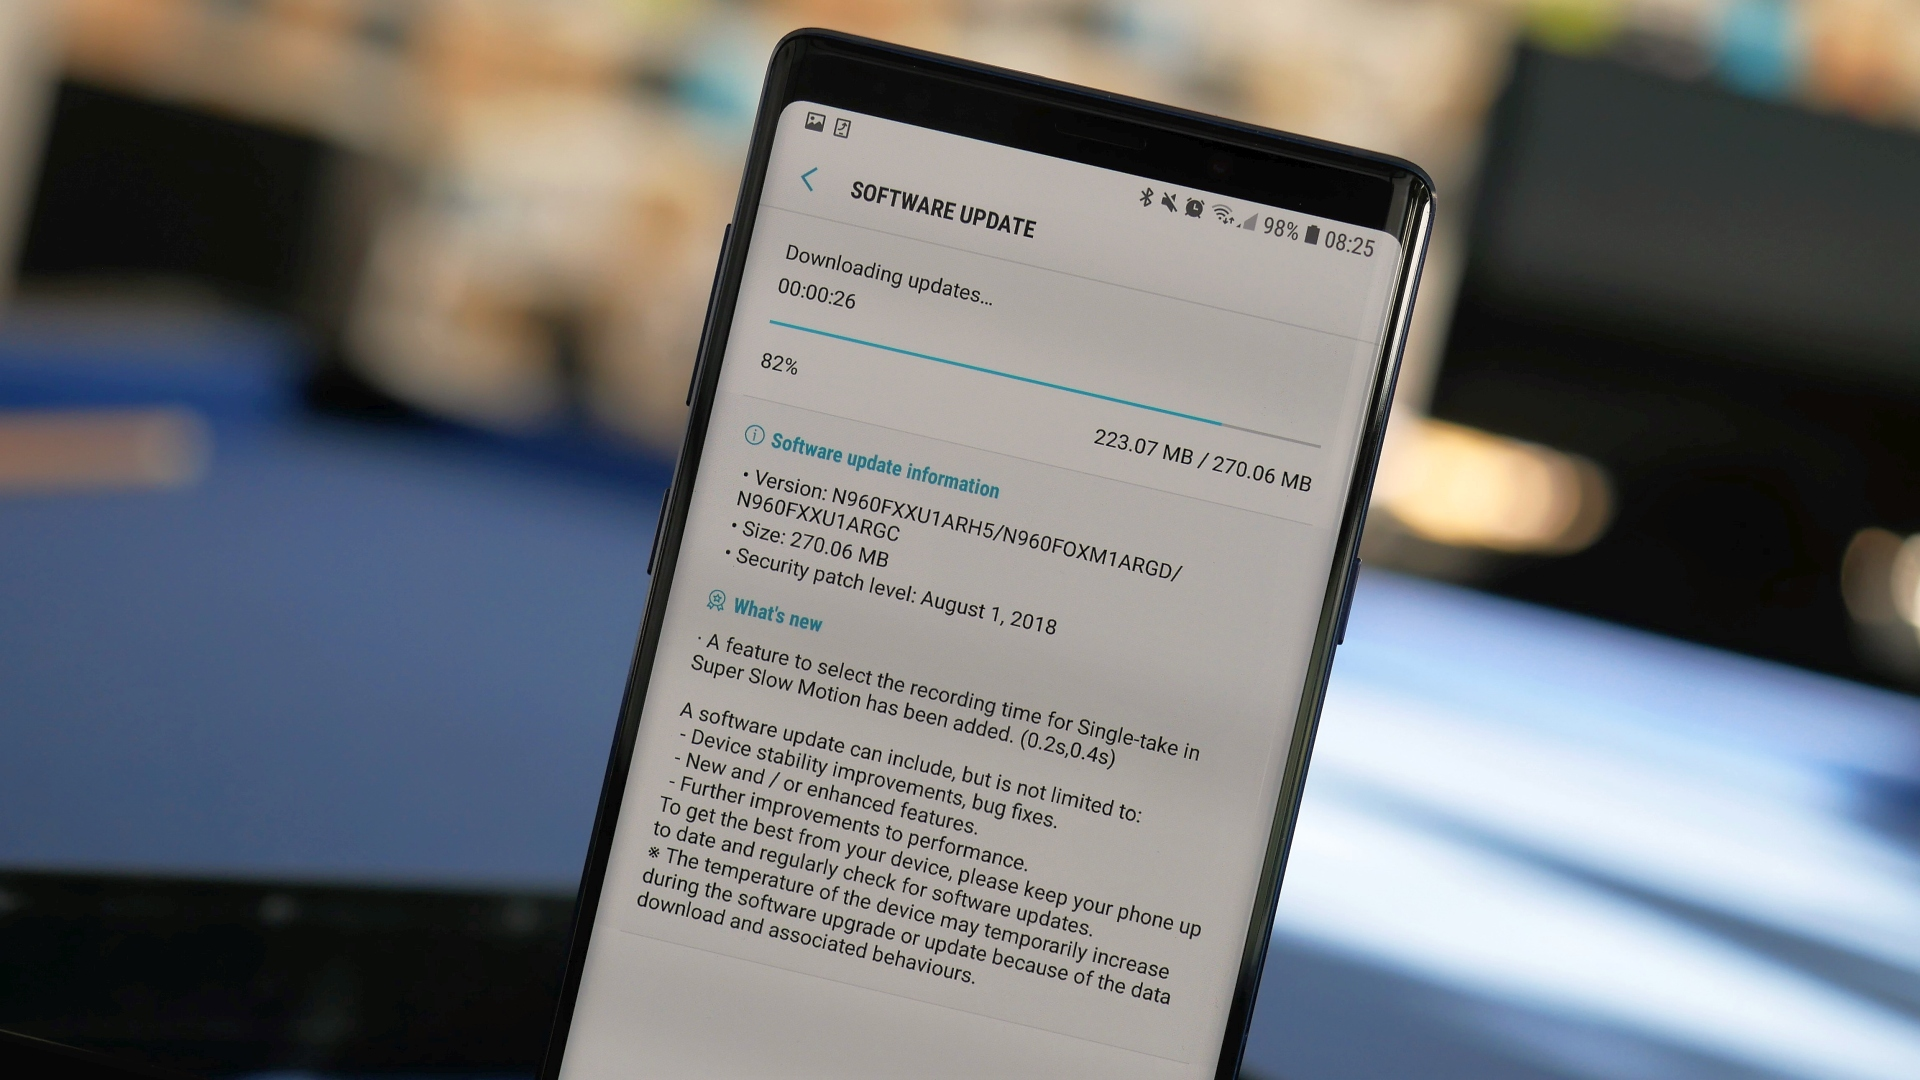 First Samsung Galaxy Note 9 update now rolling out - SamMobile